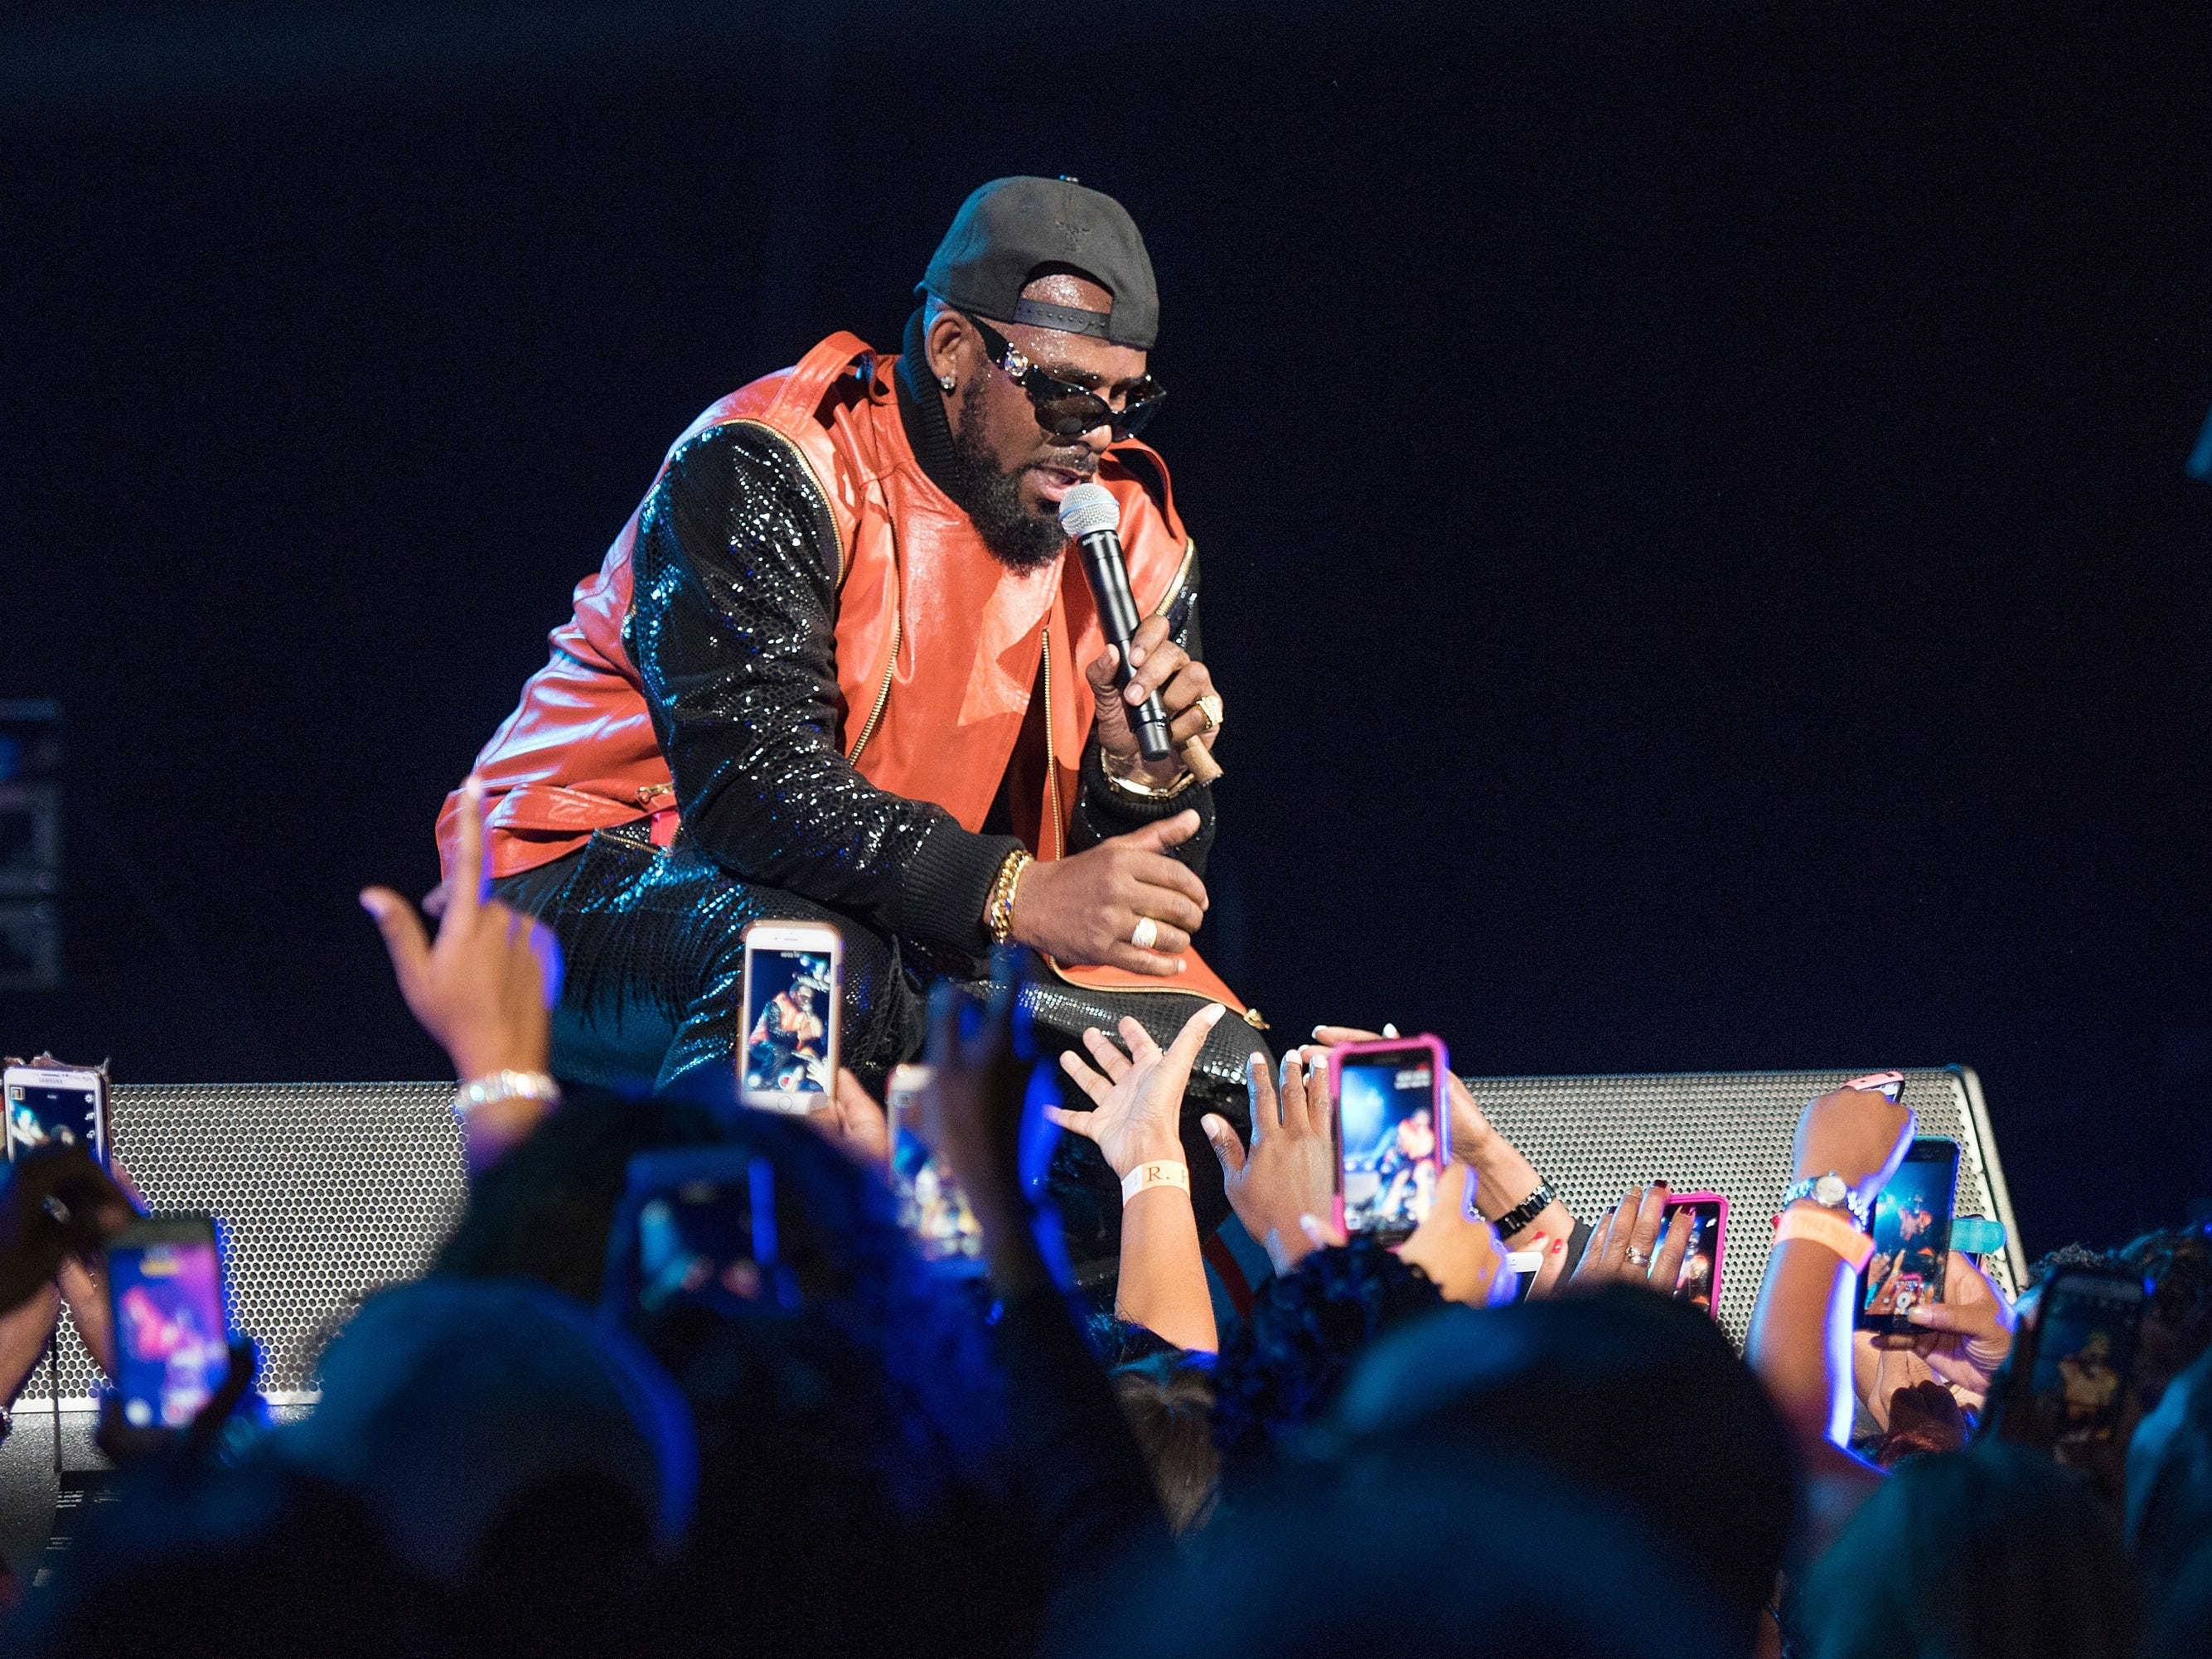 R. Kelly performs in concert at Barclays Center on Sept. 25, 2015, in New York City.